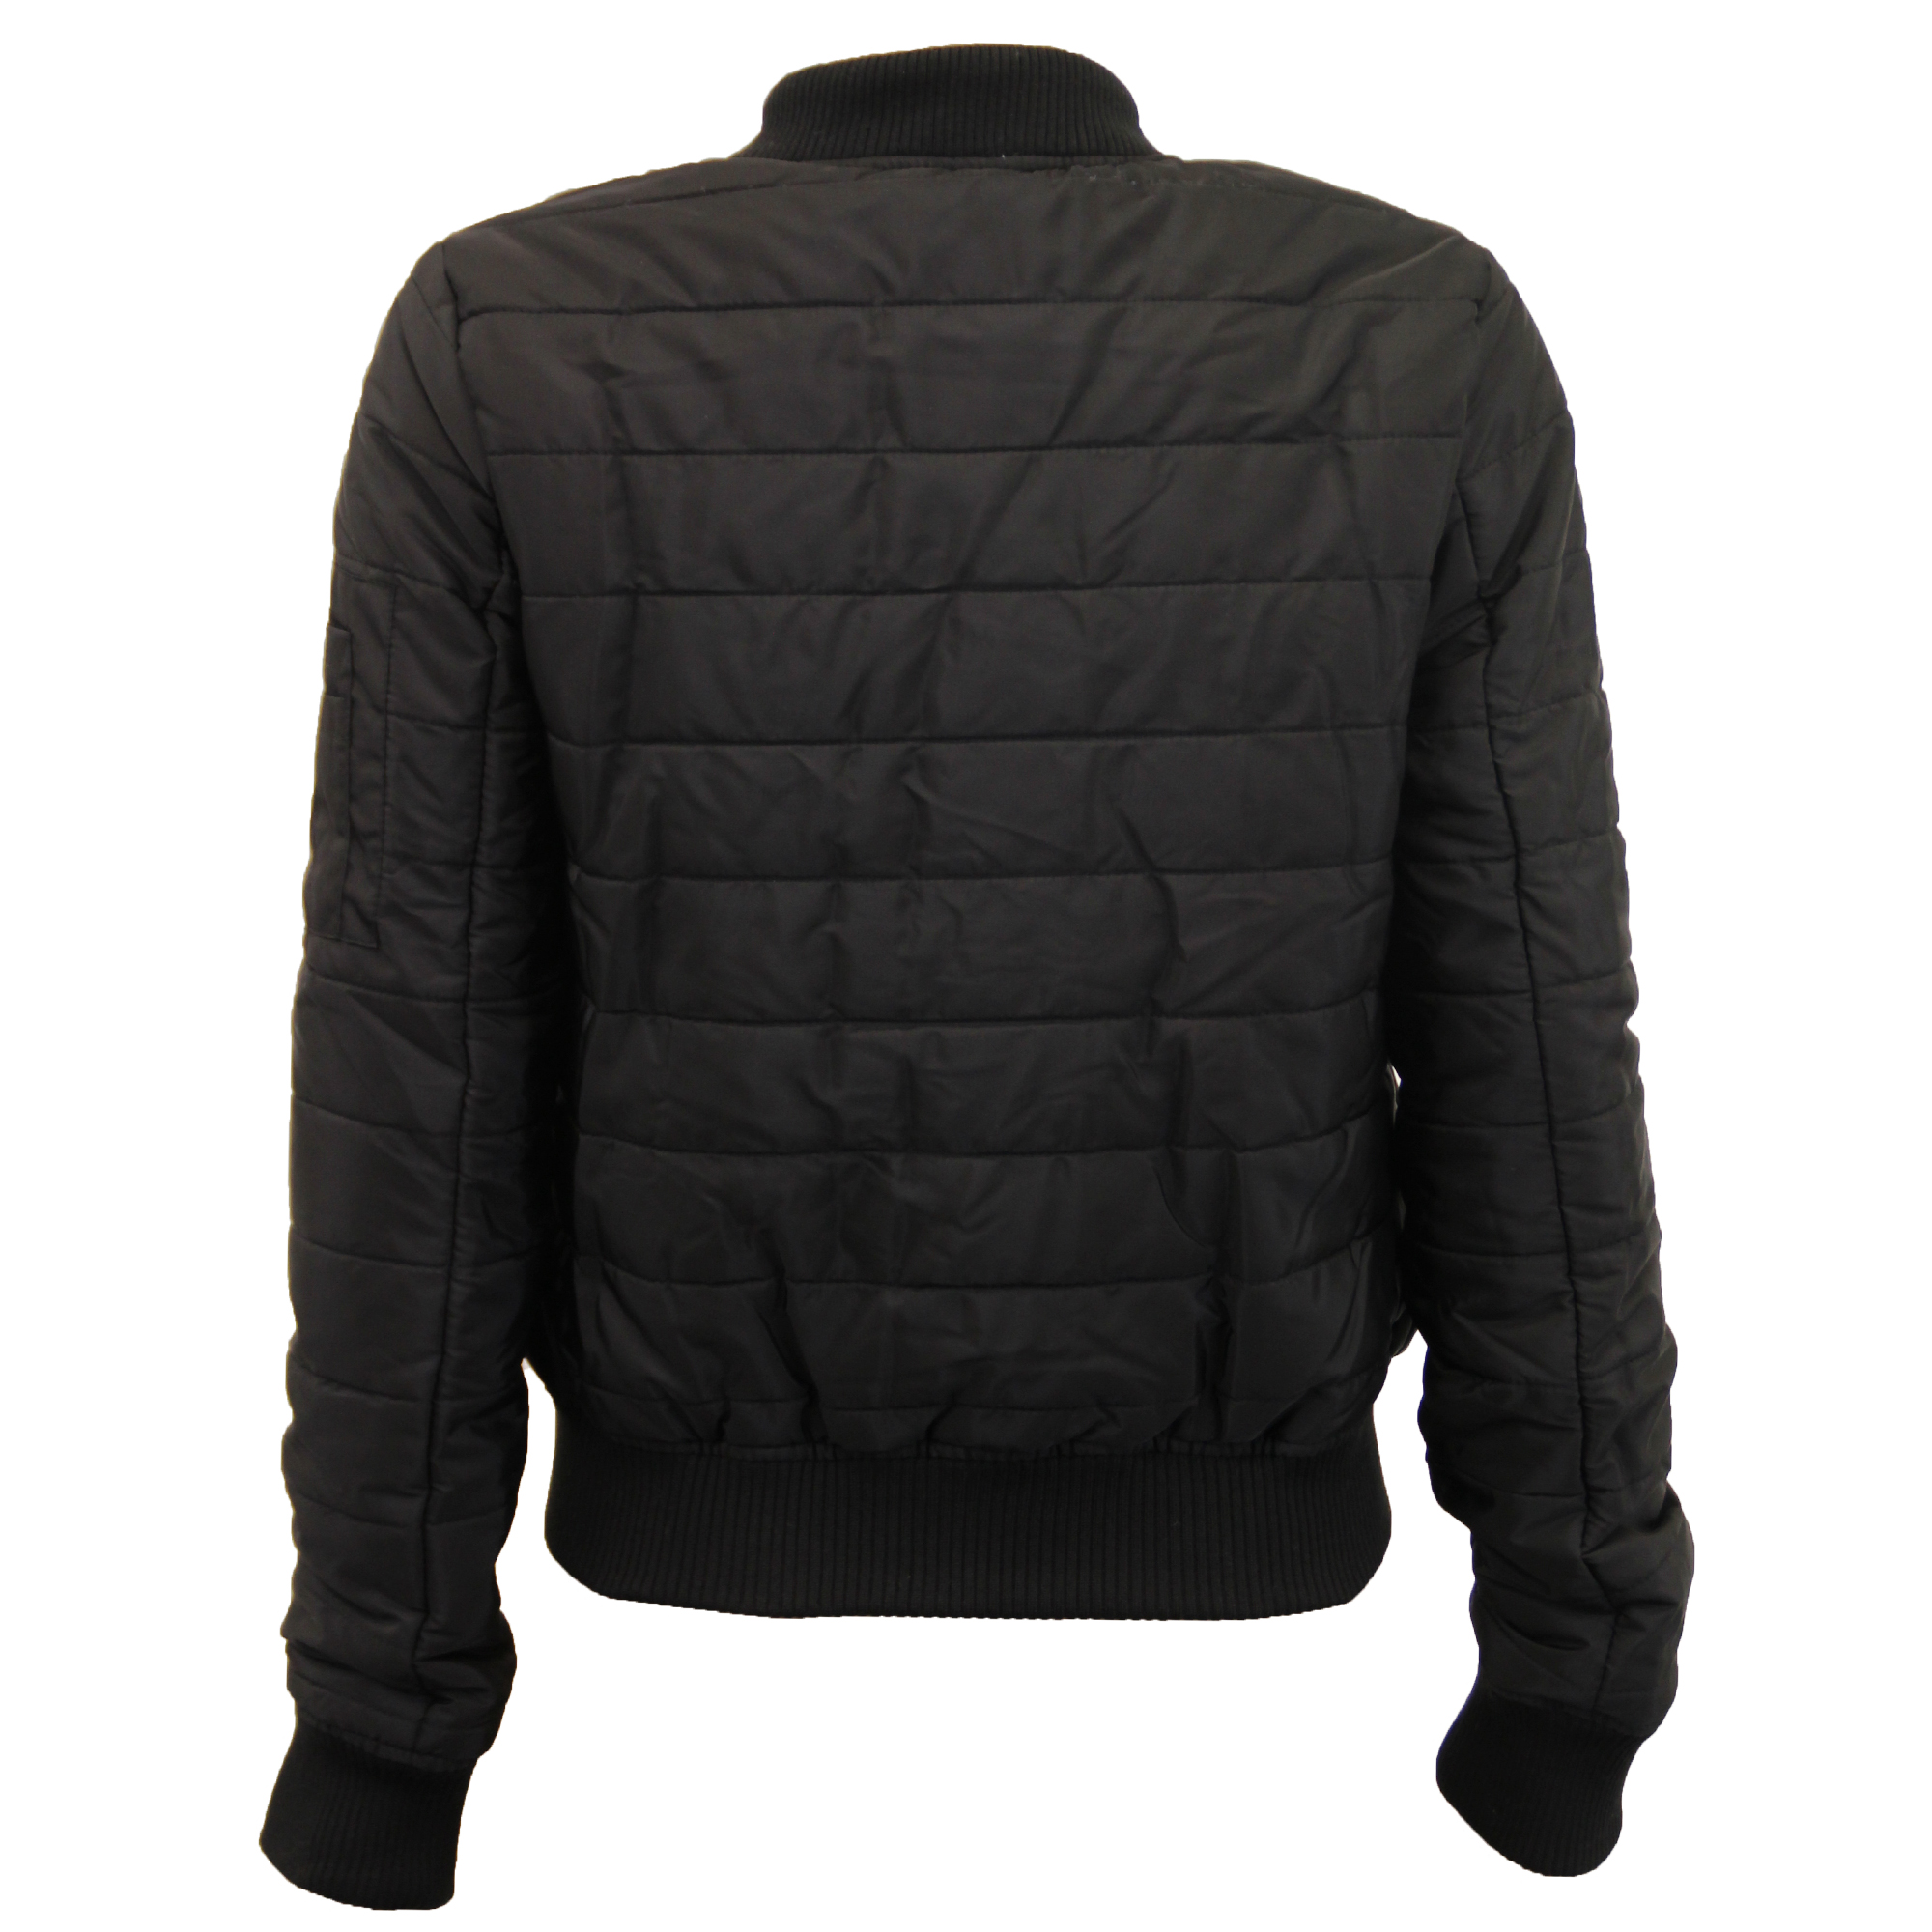 5befdc865 Details about ladies jacket Brave Soul womens coat MA1 harrington padded  quilted bomber winter